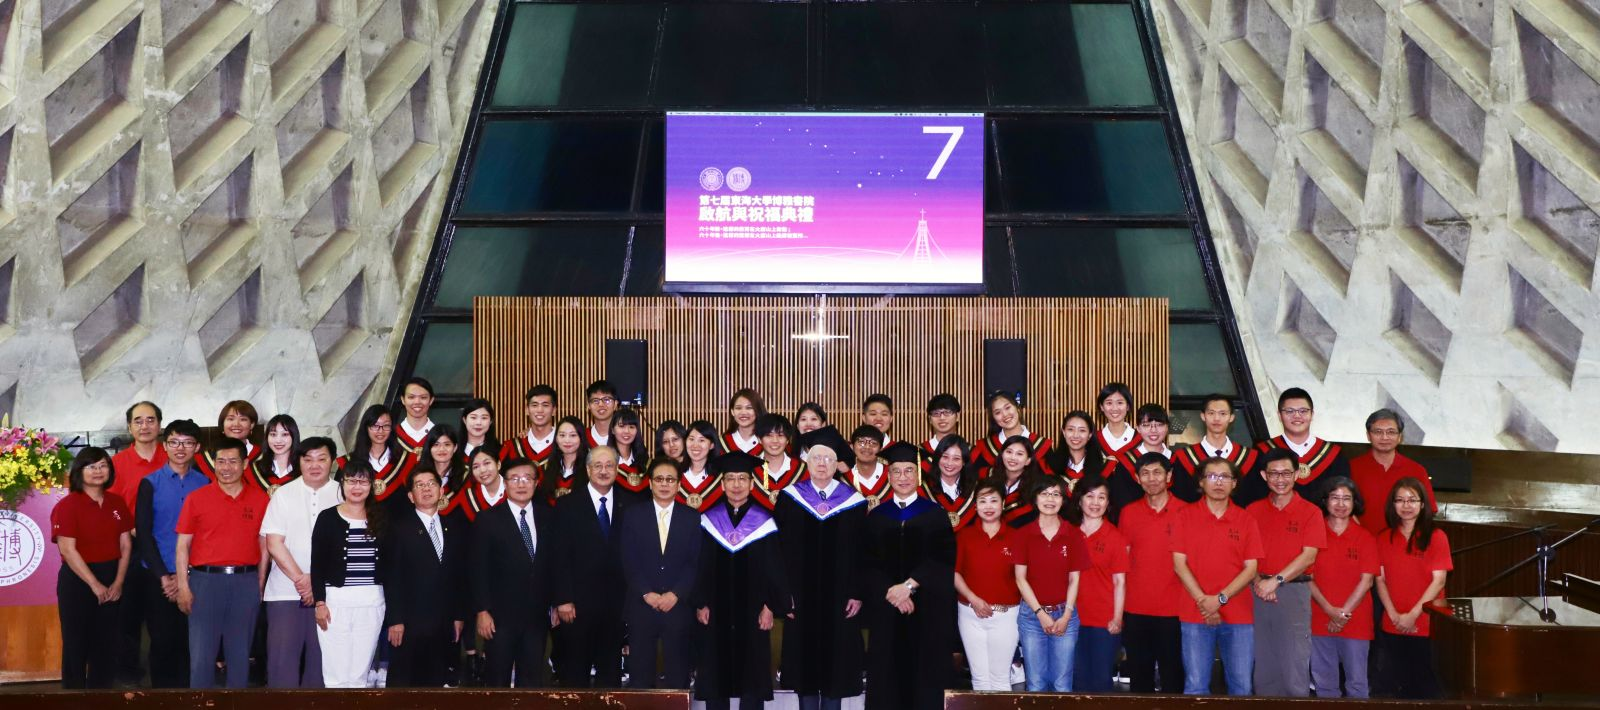 The 7th Graduation Ceremony of Poya School, Tunghai University